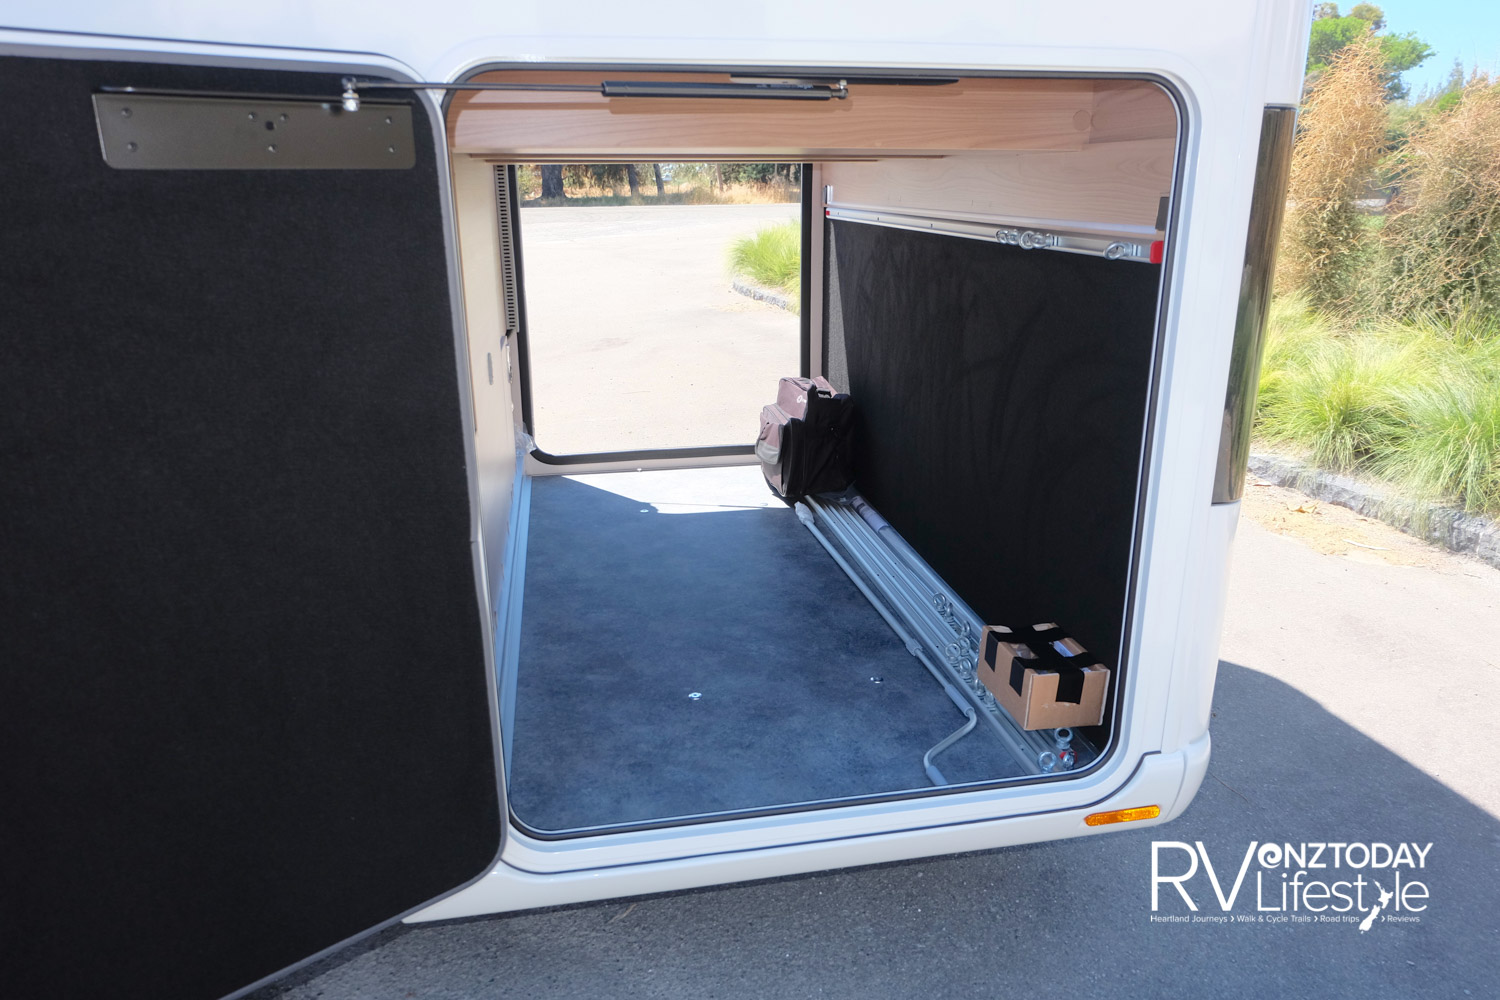 Large rear boot, accessible both sides, plenty of tie down positions, extra storage shelves and drawers as well